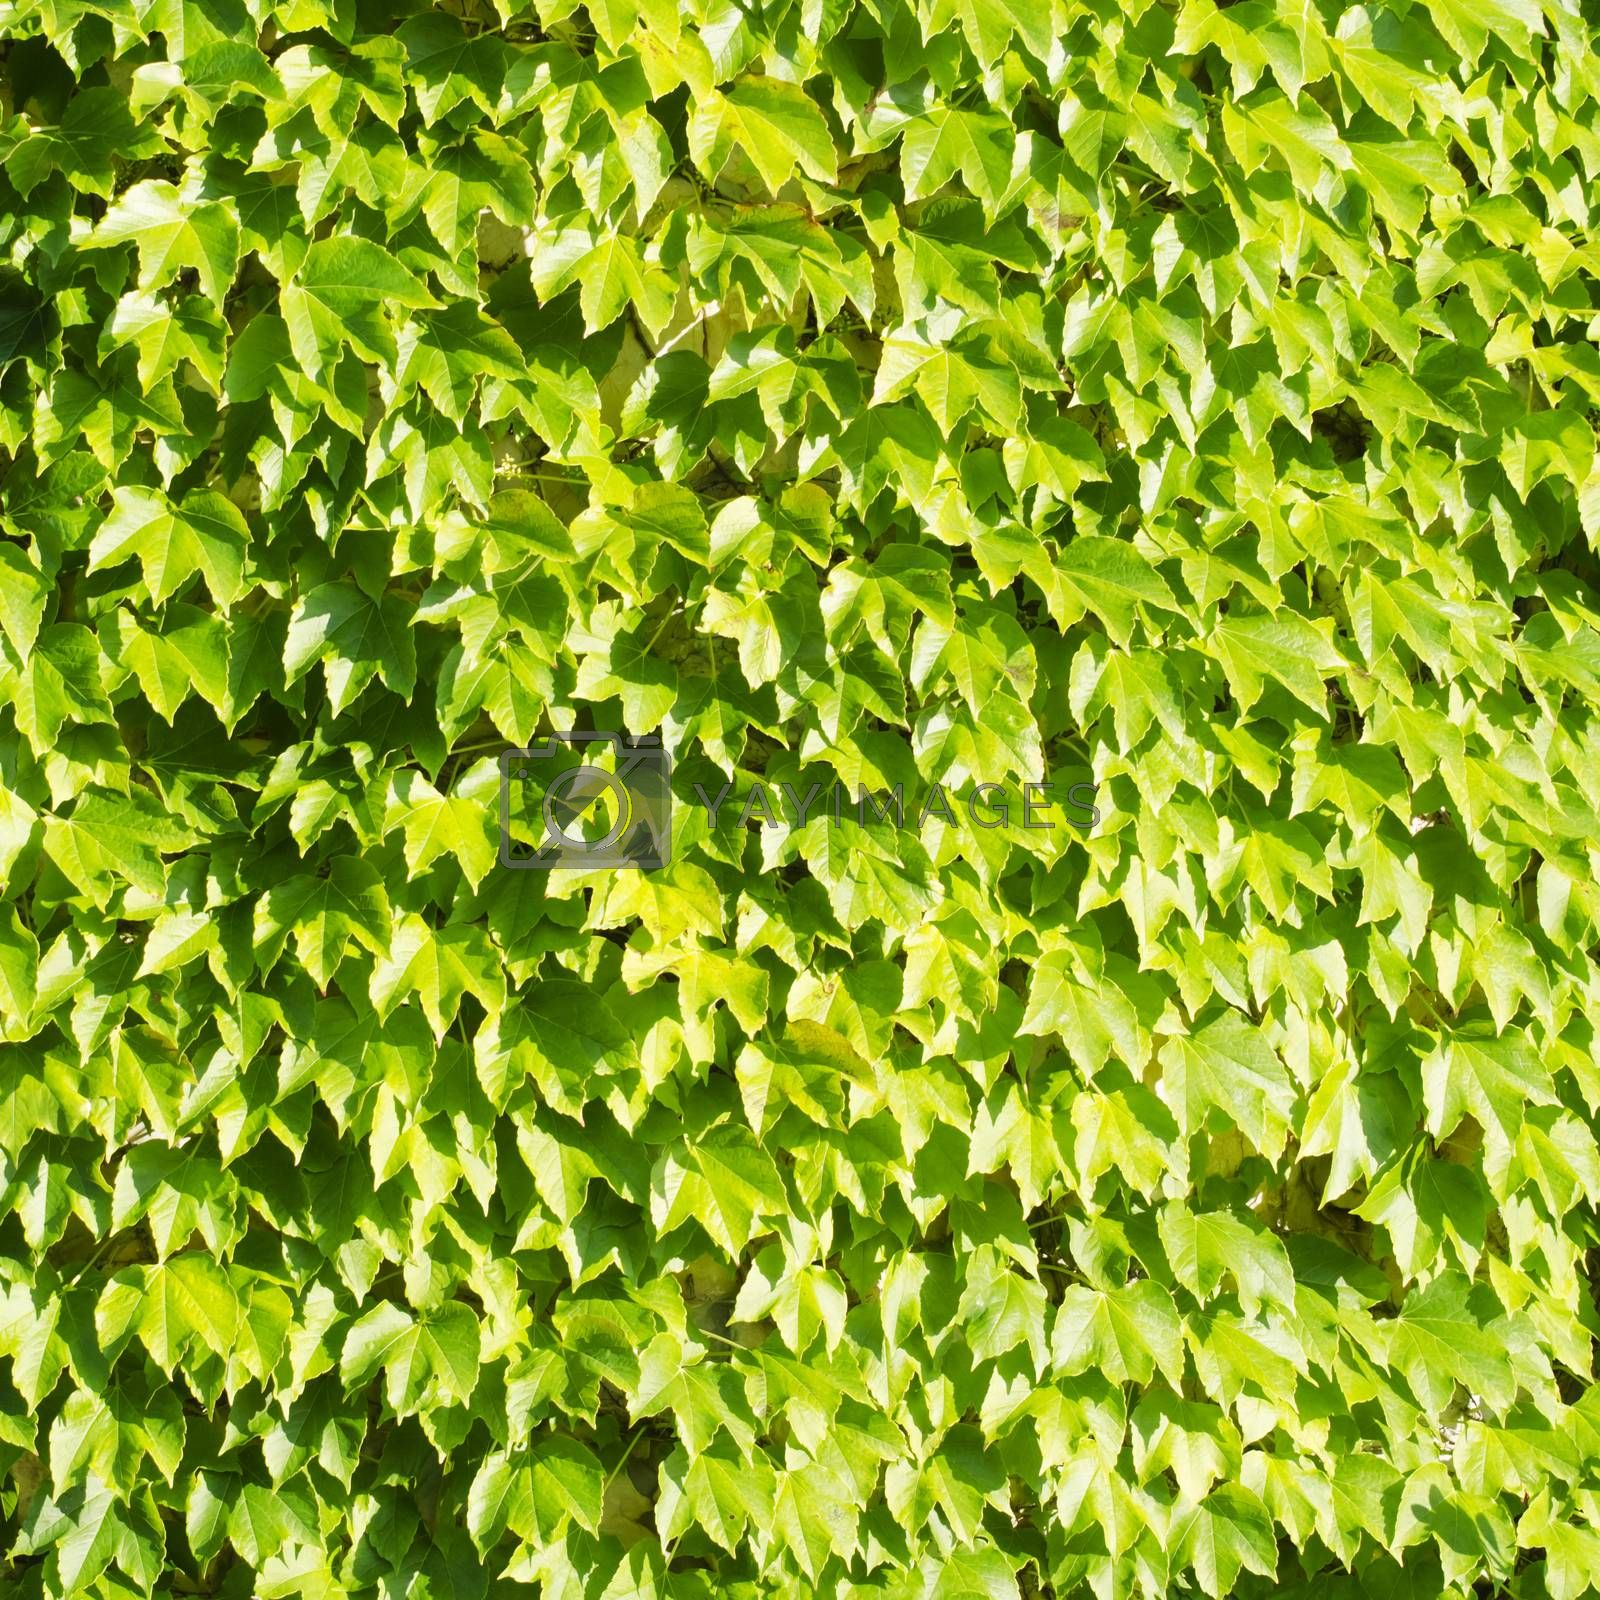 Photo of the Green Leaves Background